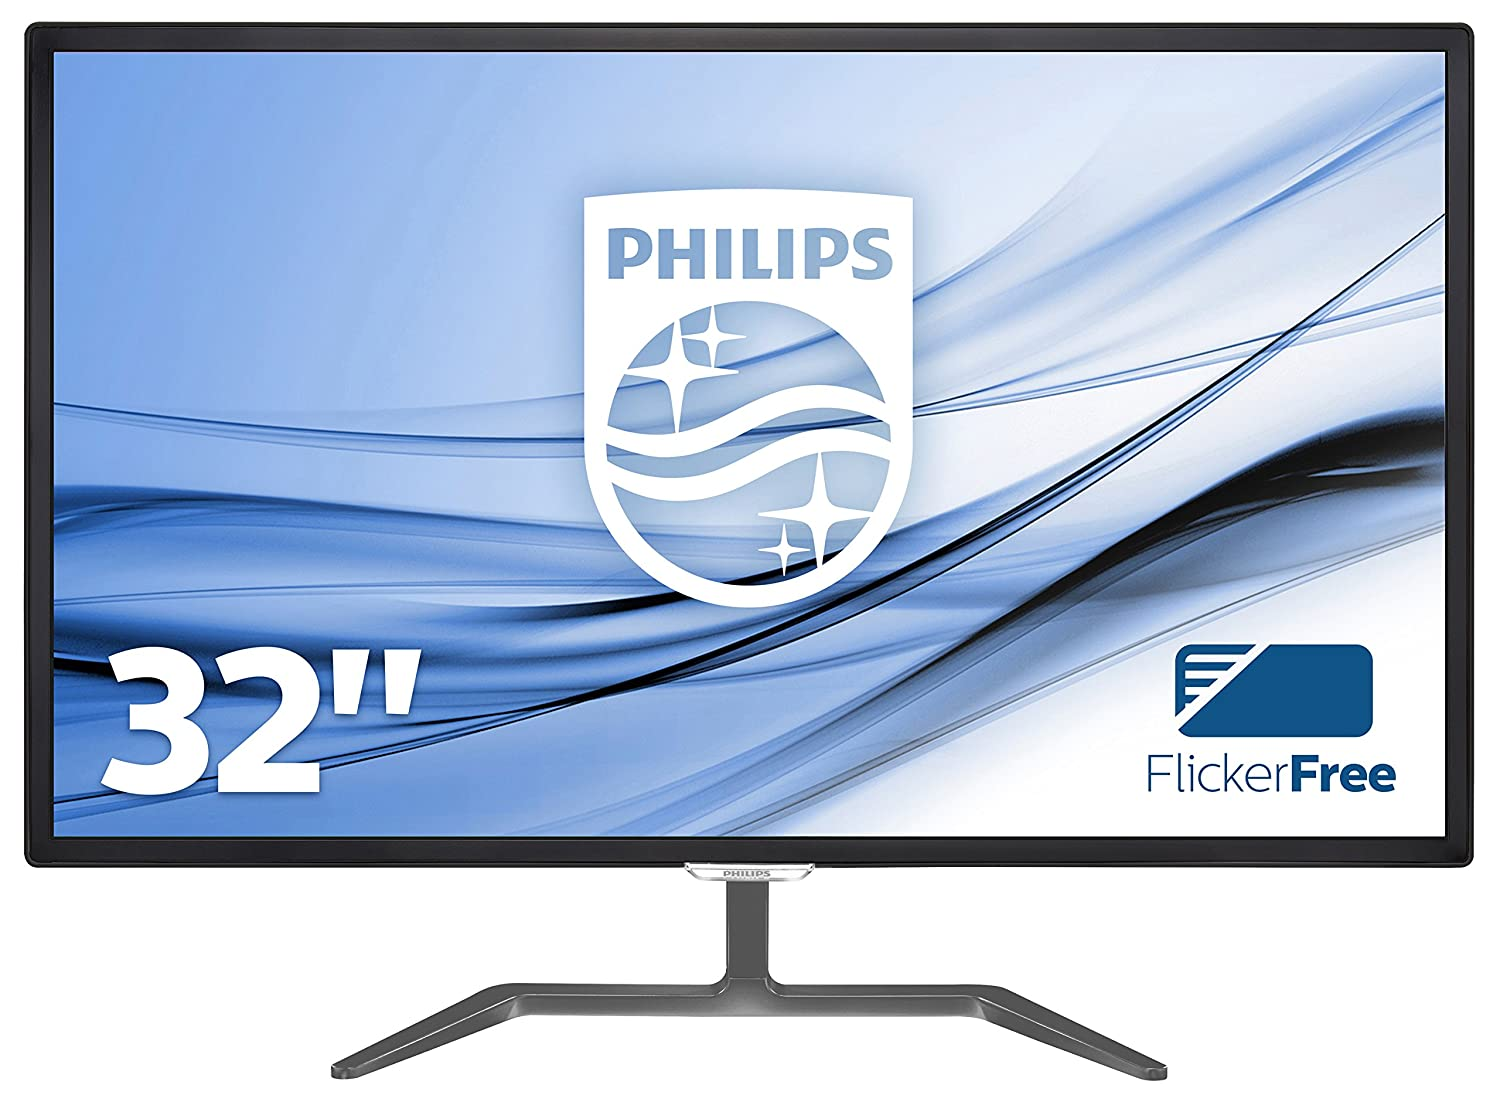 Philips 323e7qdab 00 Lcd Ips 315 Inch Monitor Lg 25ampquot 25um58p Computers Accessories